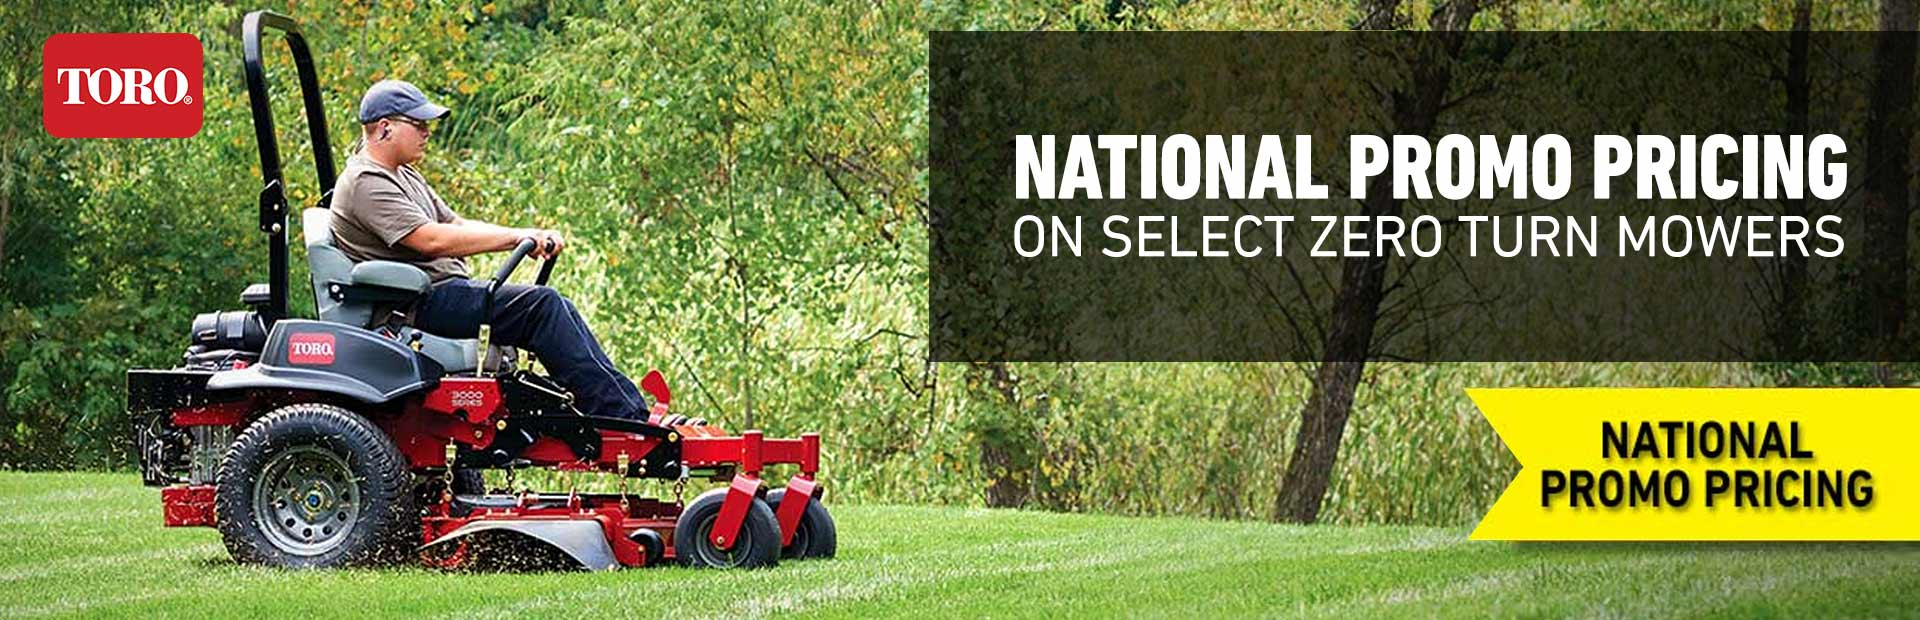 Toro: National Promo Pricing On Select Zero Turn Mowers